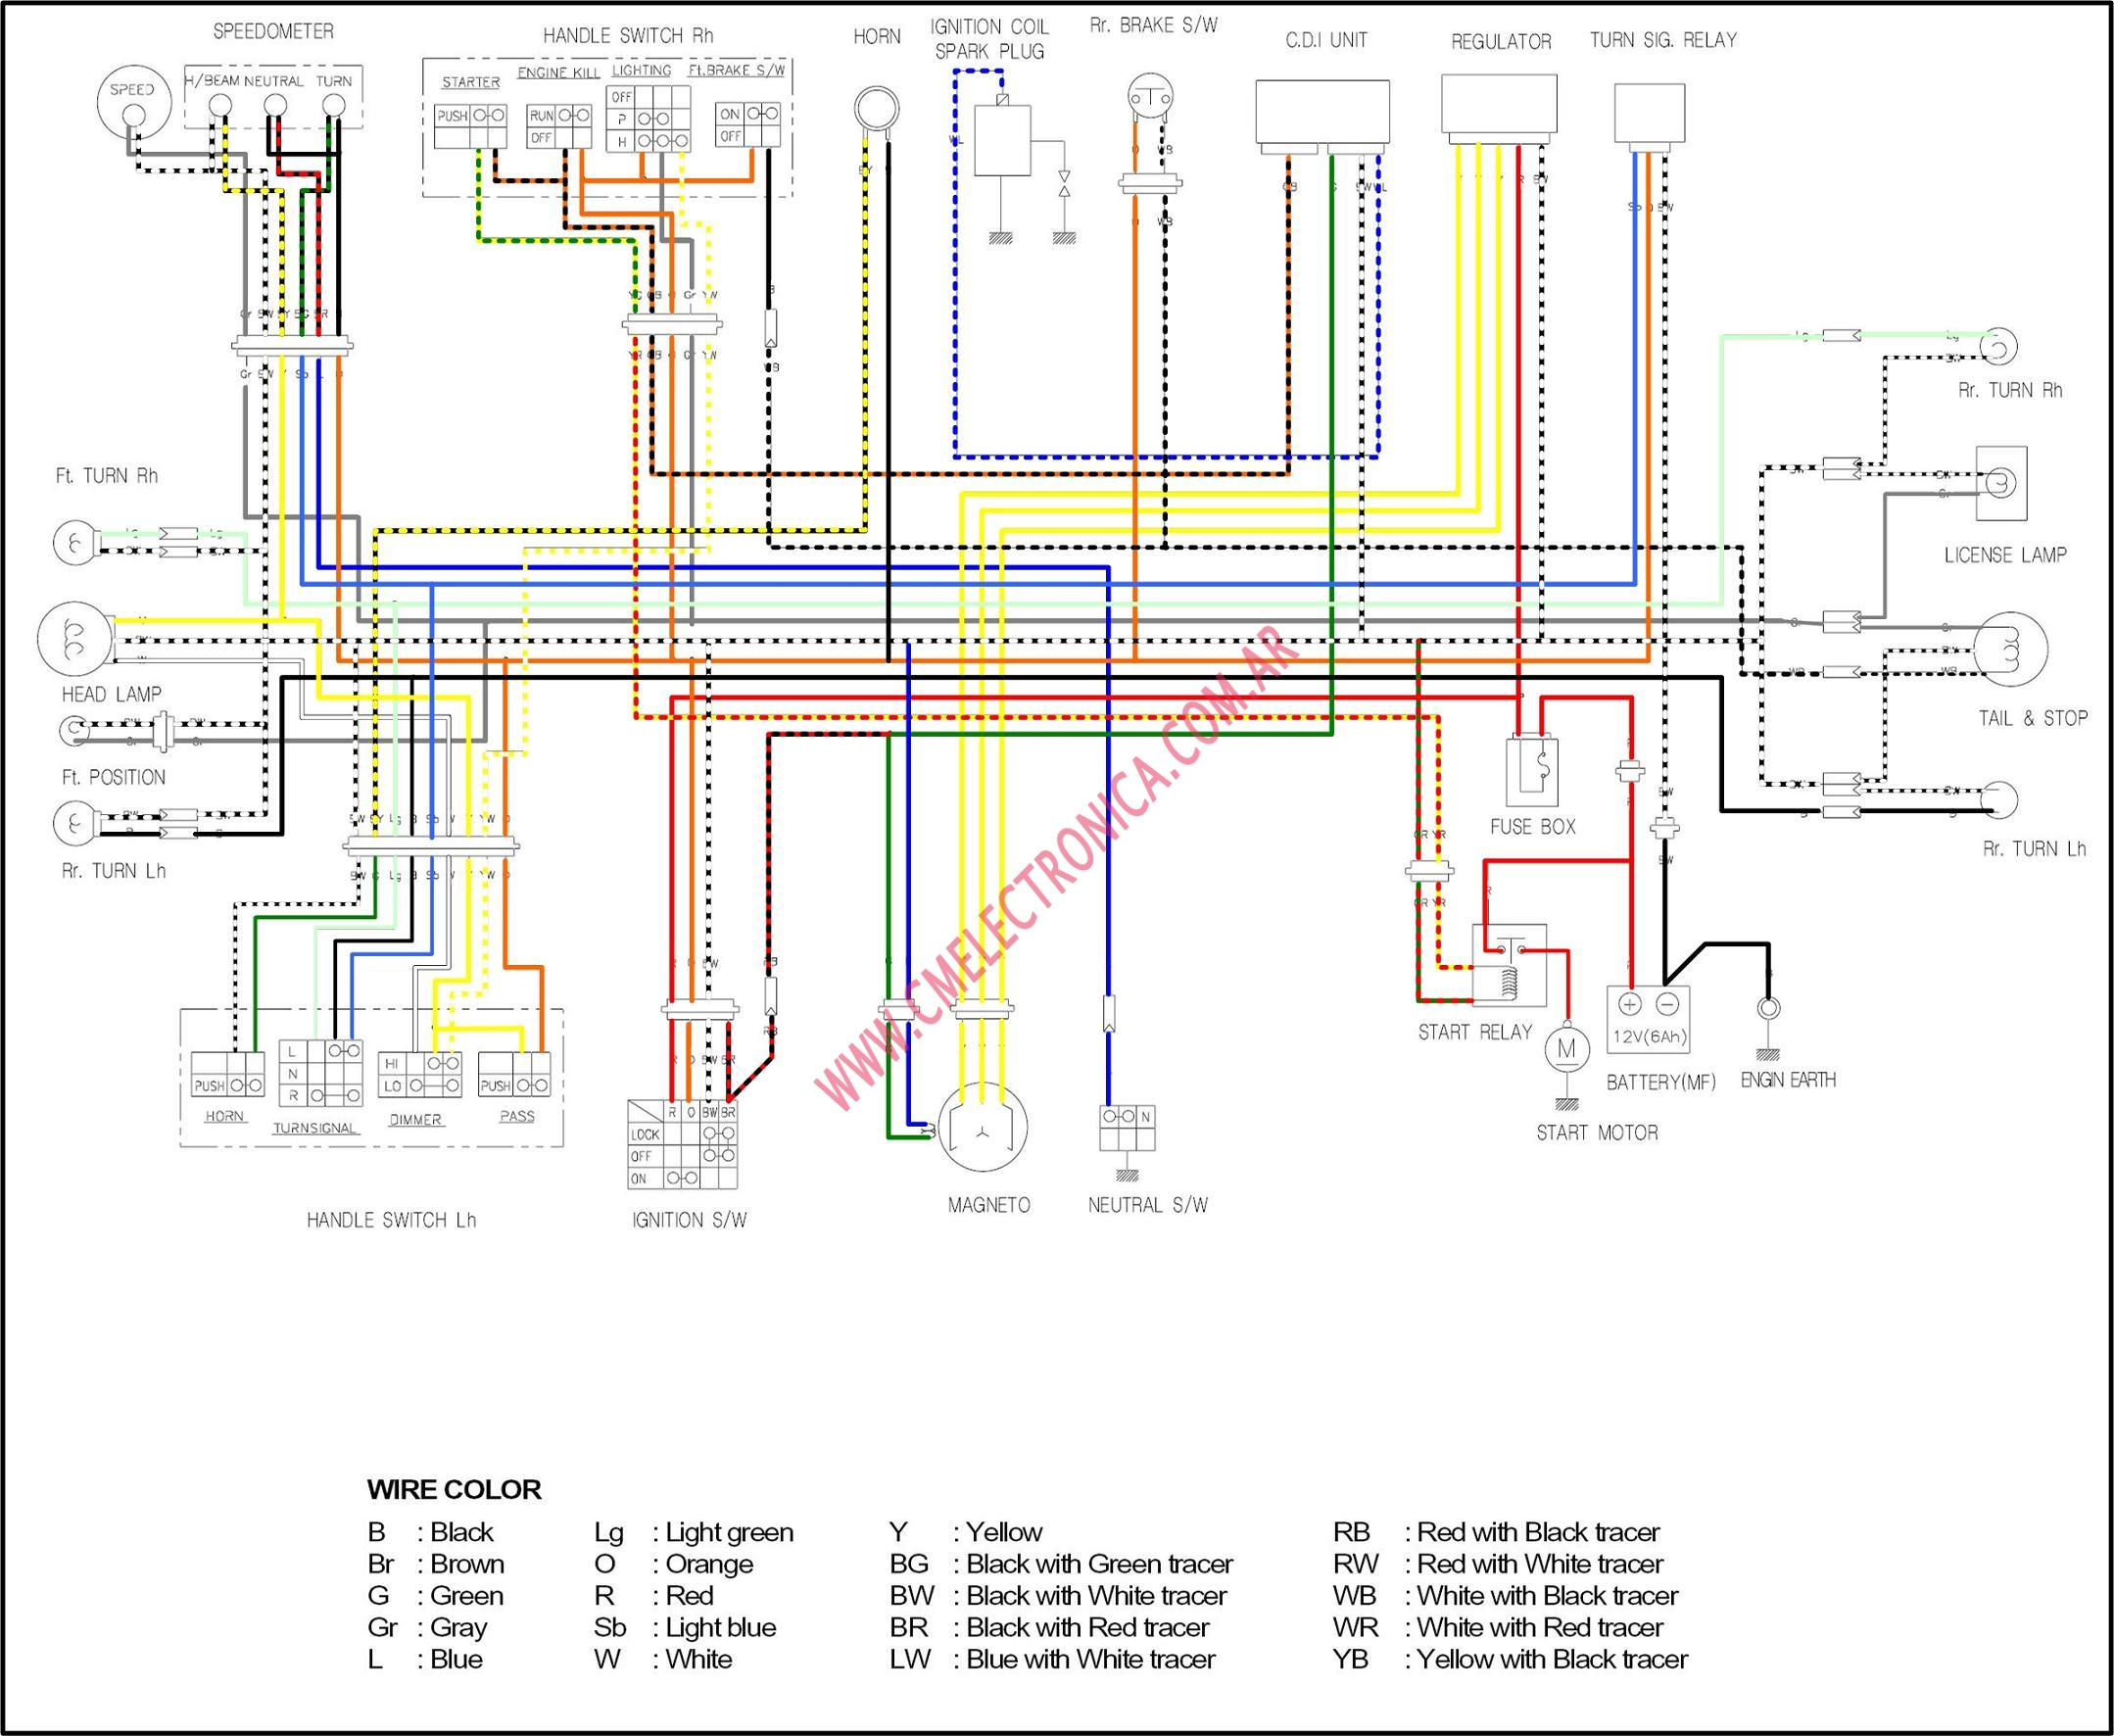 yamaha hyosung rt125 tw125 hyosung wiring diagram hyosung gt250r workshop manual \u2022 205 ufc co hyosung gt250r brake wiring diagram at crackthecode.co